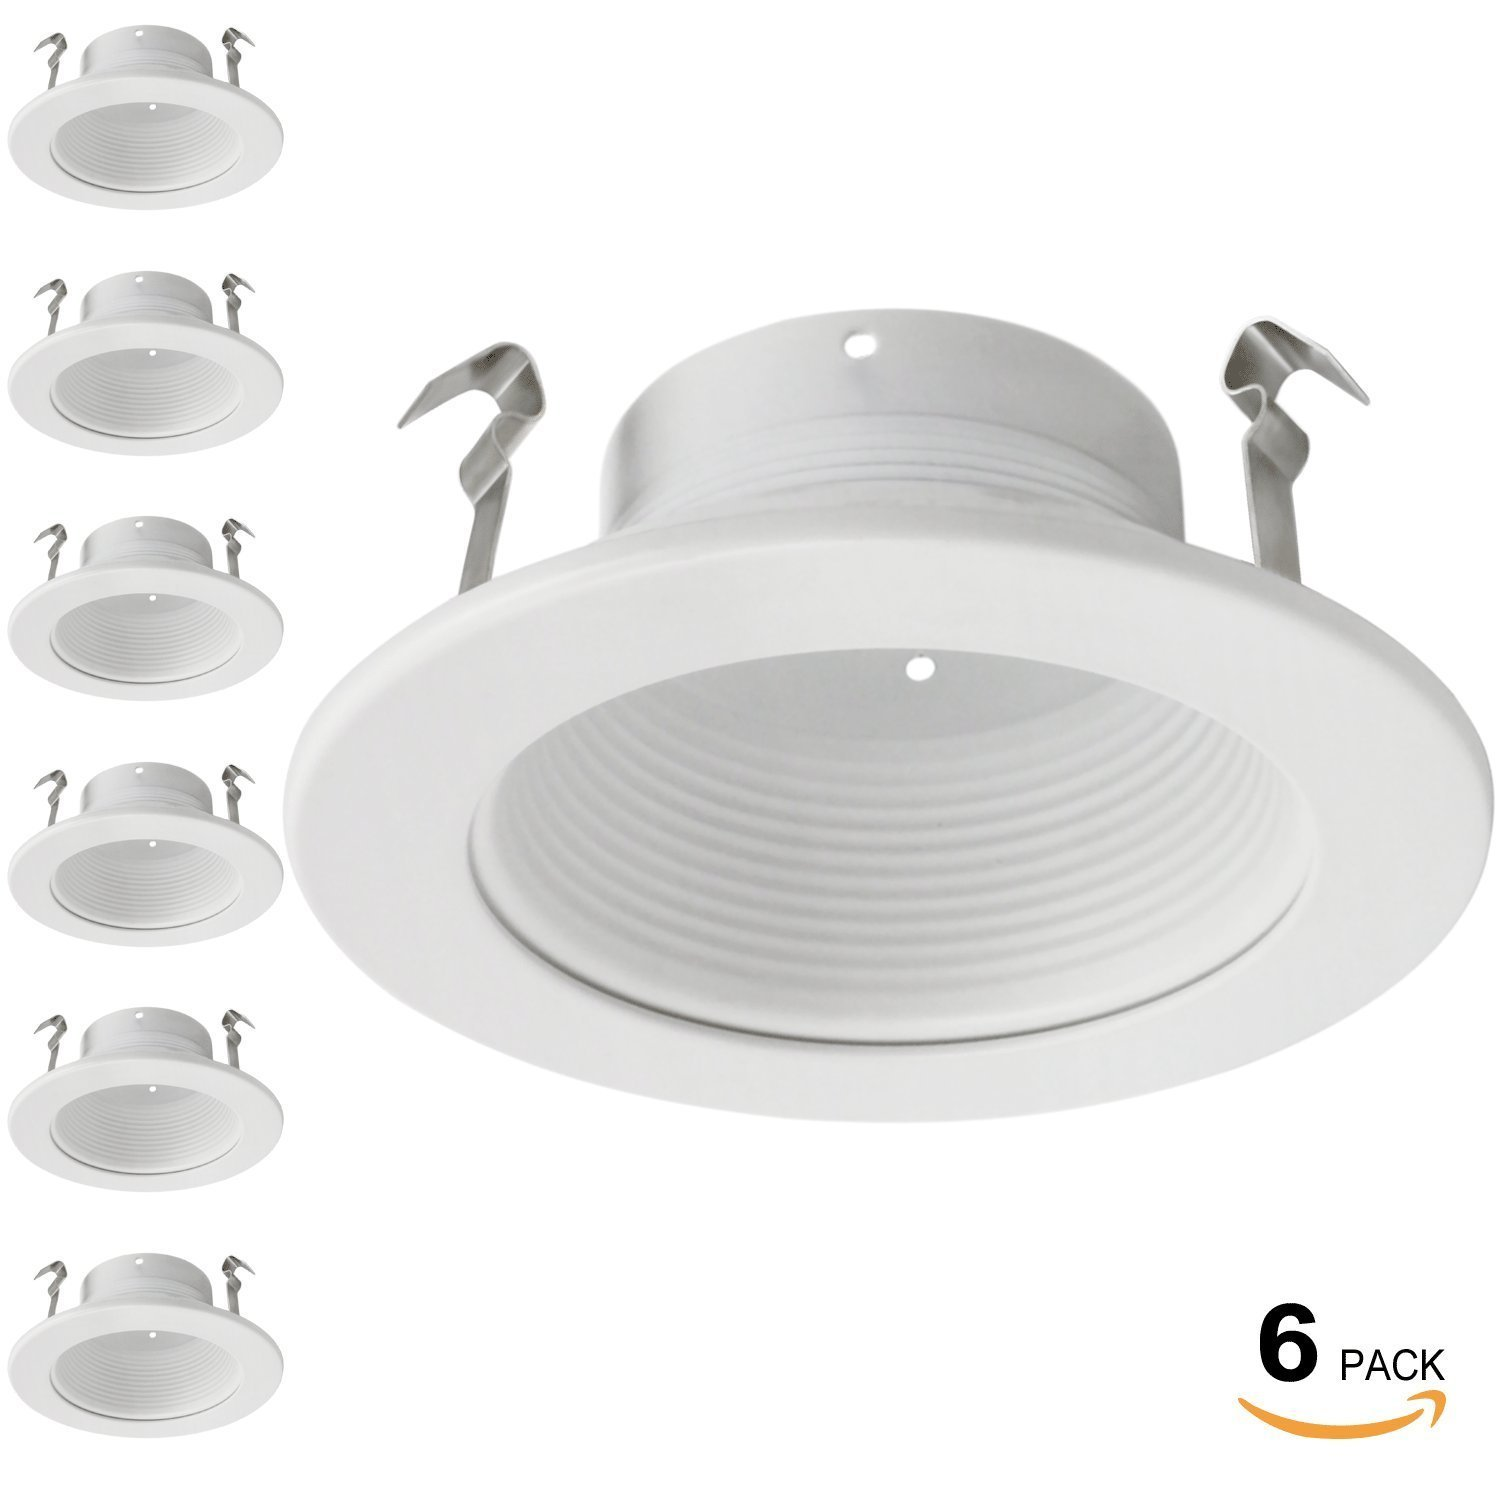 6 Pack 4 Inch Recessed Can Light Trim with White Metal Step Baffle, for 4 Inch Recessed Can, Fit Halo/Juno Remodel Recessed Housing, Line Voltage Available by TORCHSTAR (Image #2)